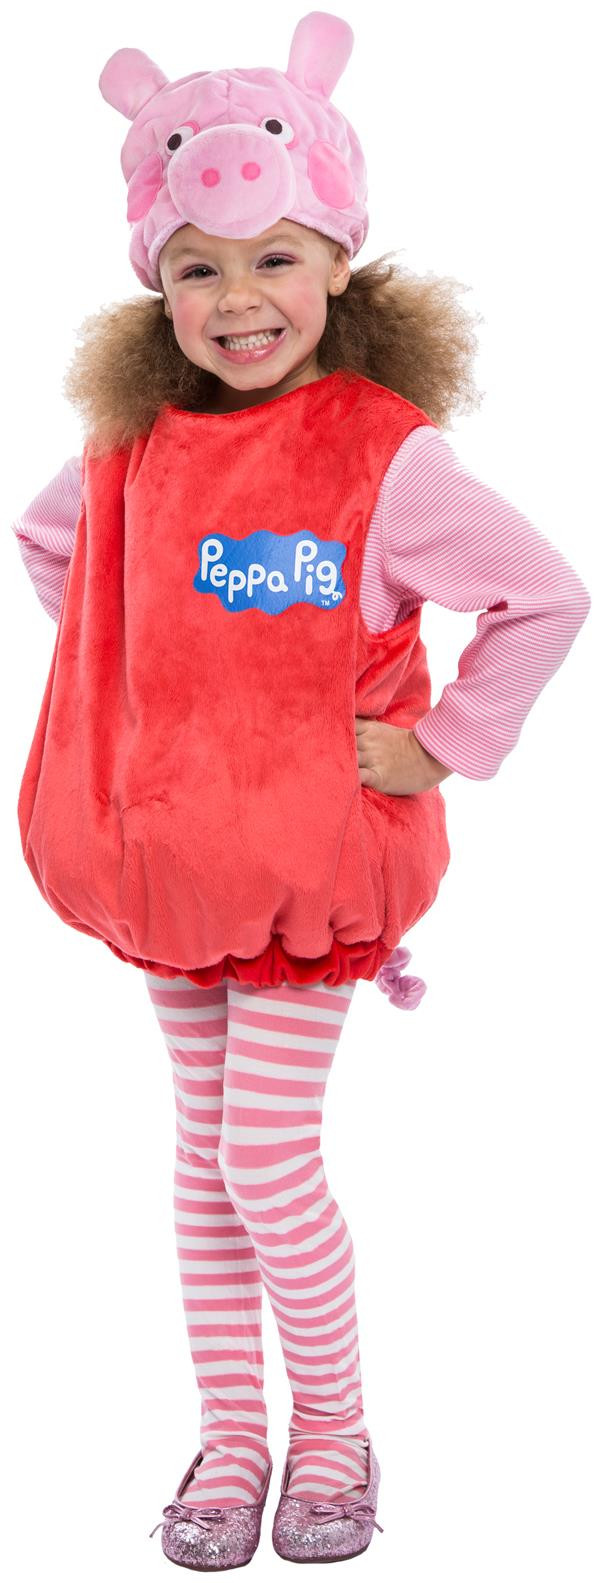 Peppa Pig Costume DIY  Peppa Pig Deluxe Toddler Costume PartyBell